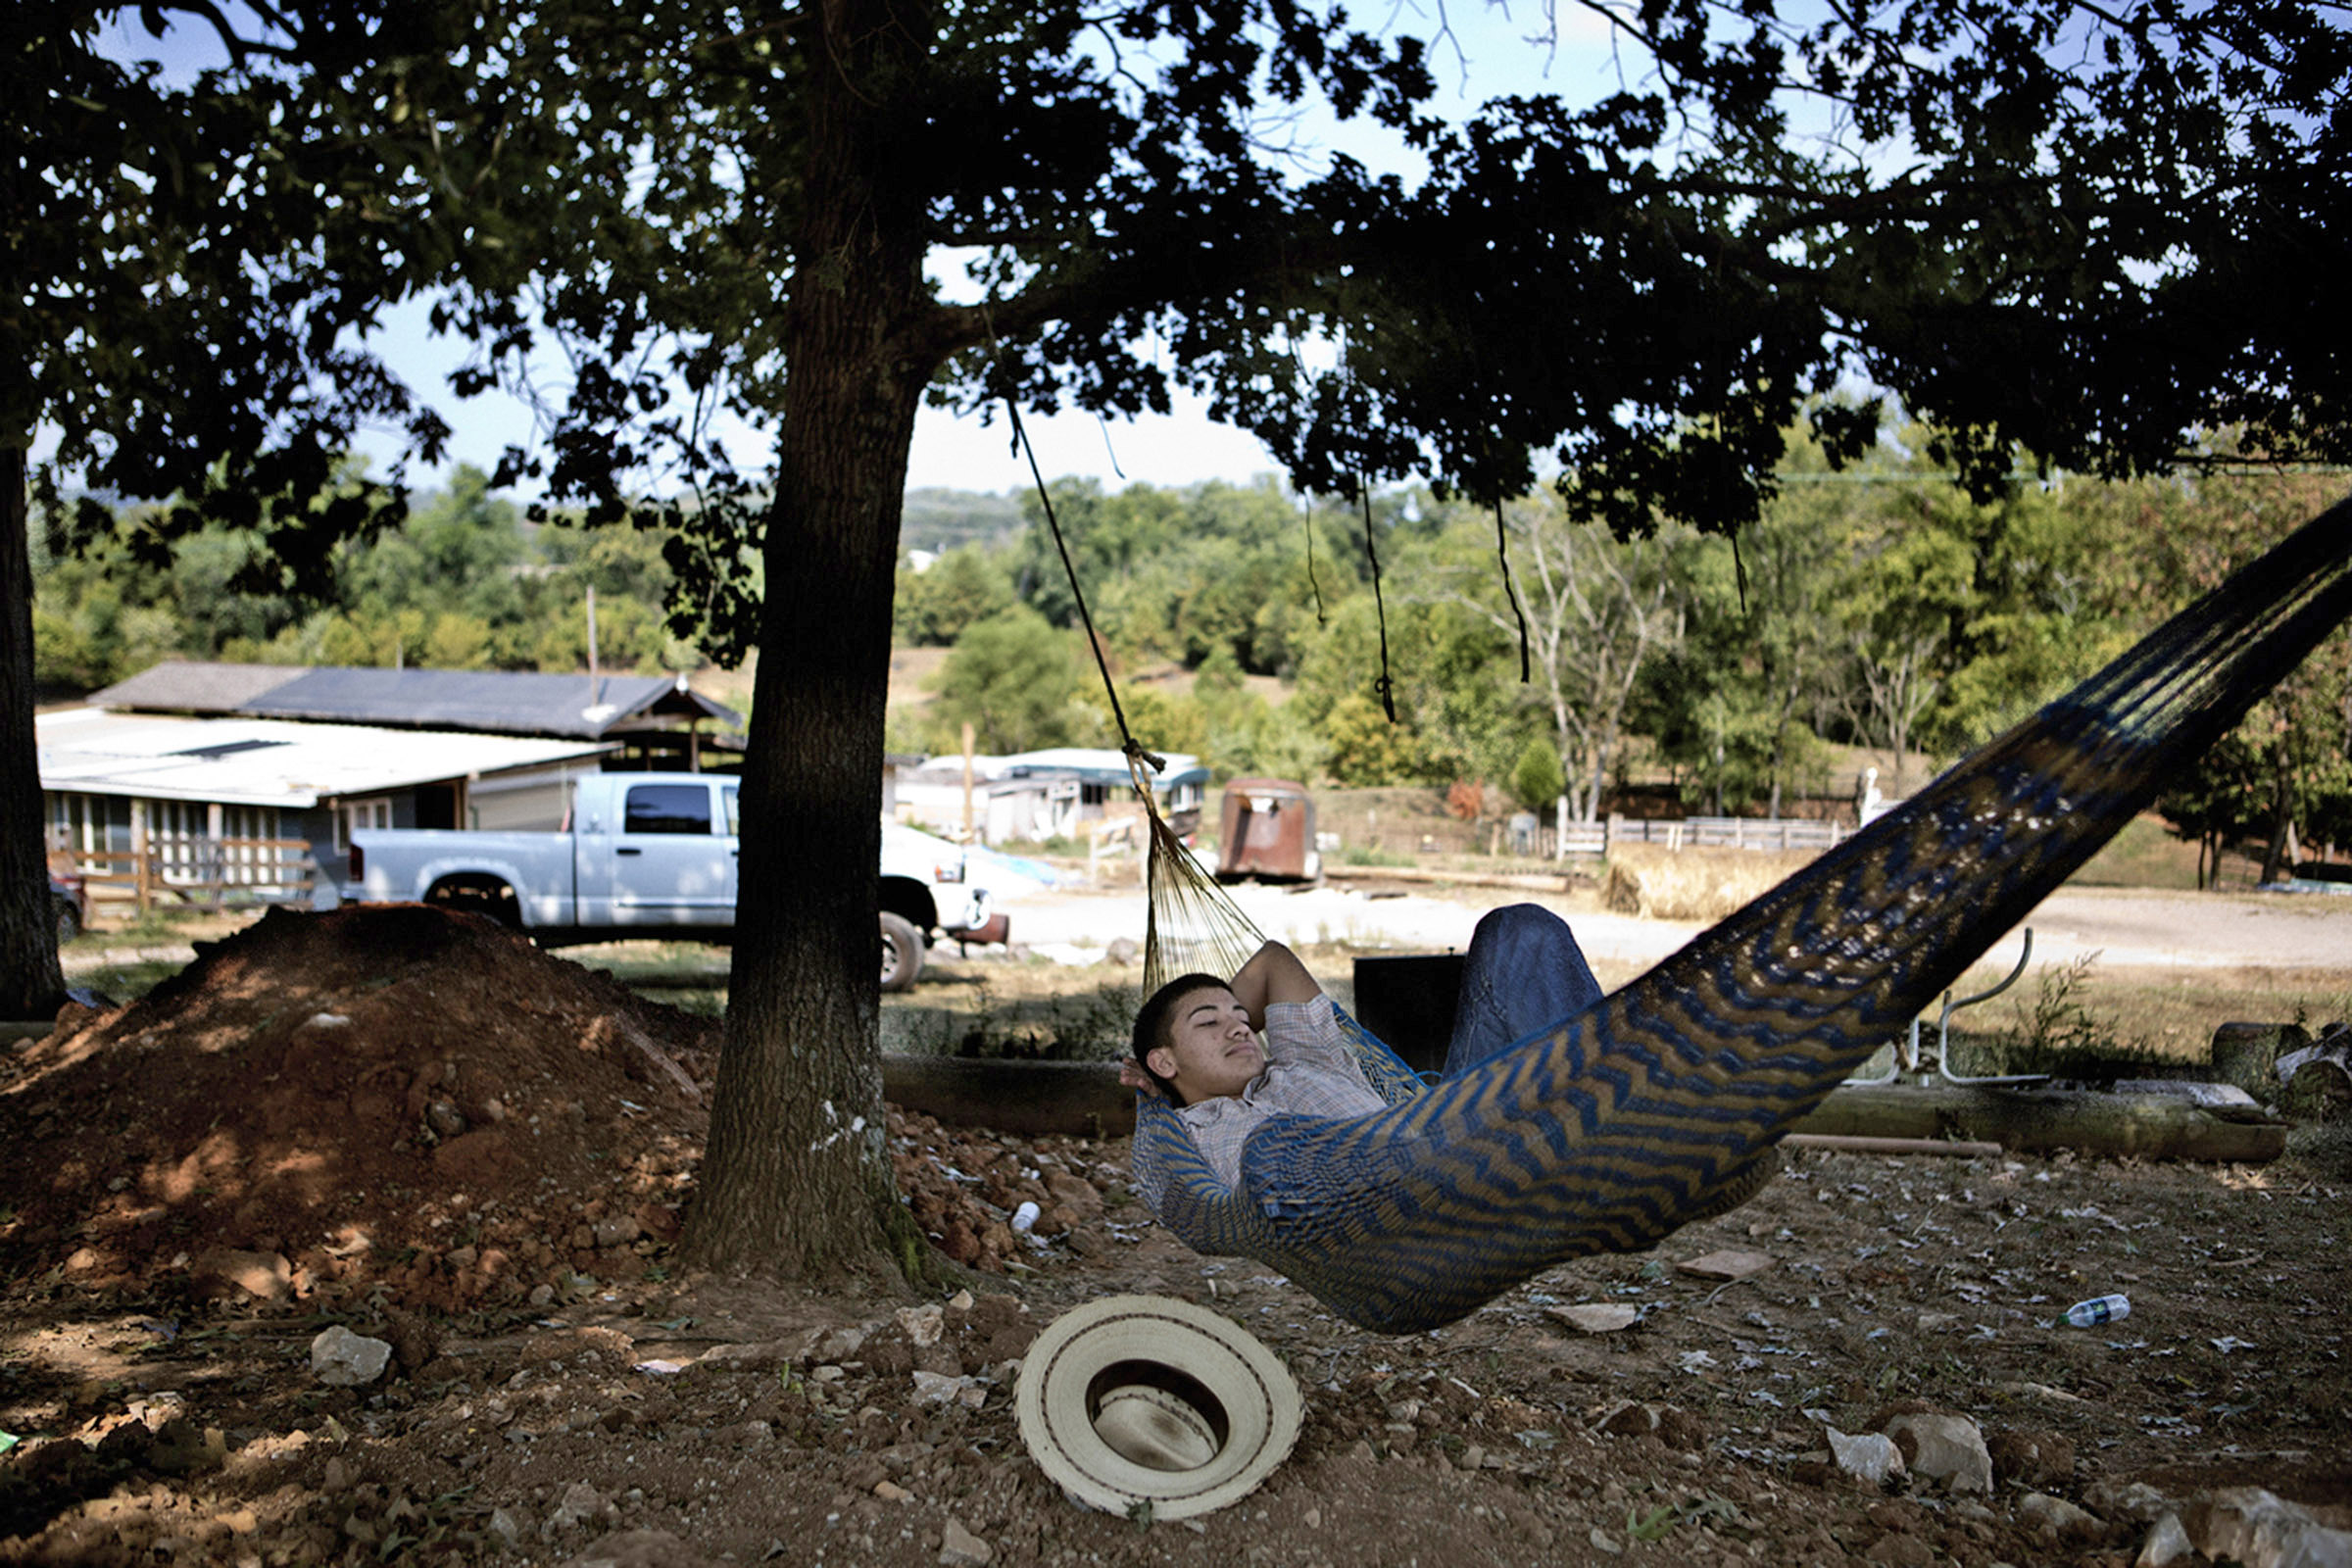 Marcos Espinoza, 17, rests in a hammock on a Sunday morning at the family ranch in Bowling Green, KY . His parents go to Iglesia La Hermosa, a Hispanic church every Sunday. They try to make him and his siblings go too, but they wonÕt force them. (Photo By Betina Garcia/Groundtruth).